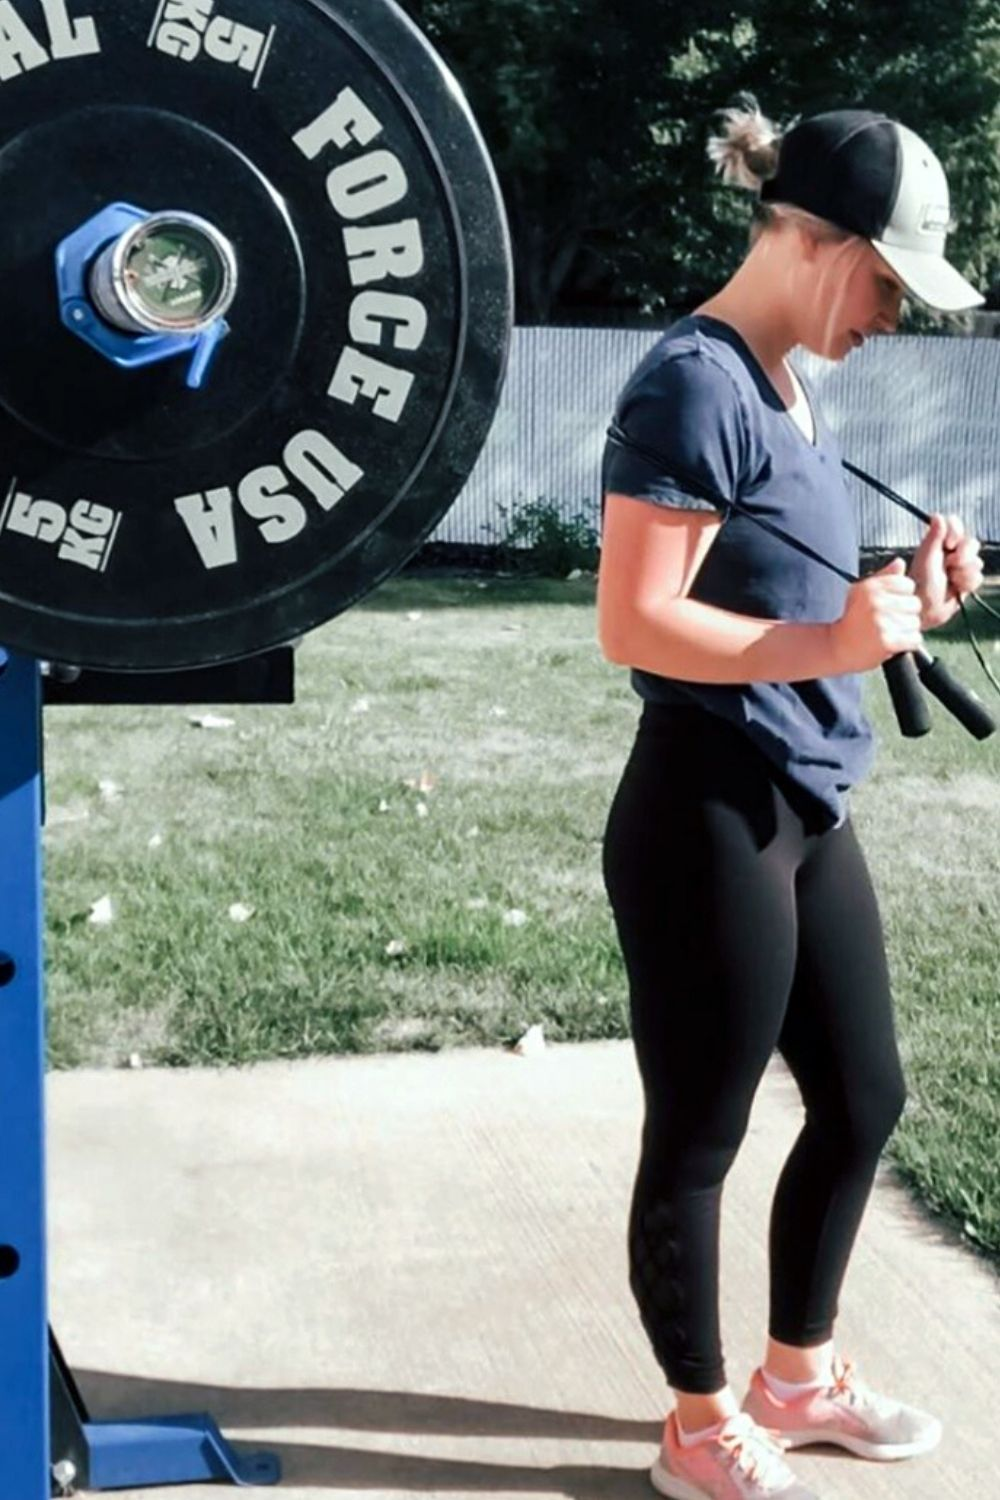 Force usa ultimate training bumper plates sold